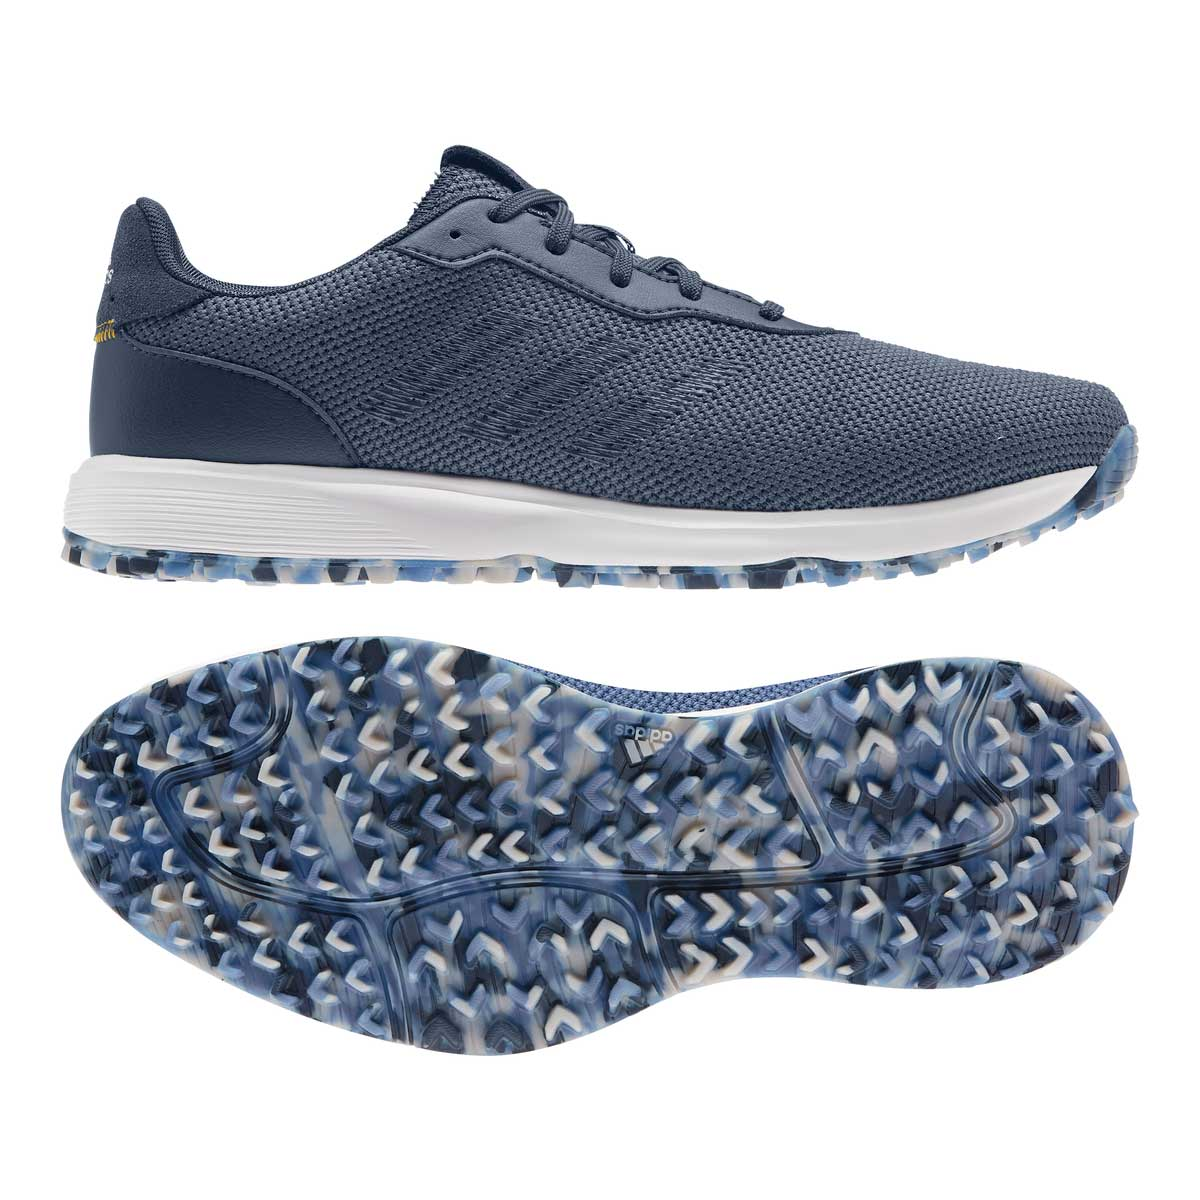 Adidas Men's S2G Crew Blue/Navy Spikeless Golf Shoe